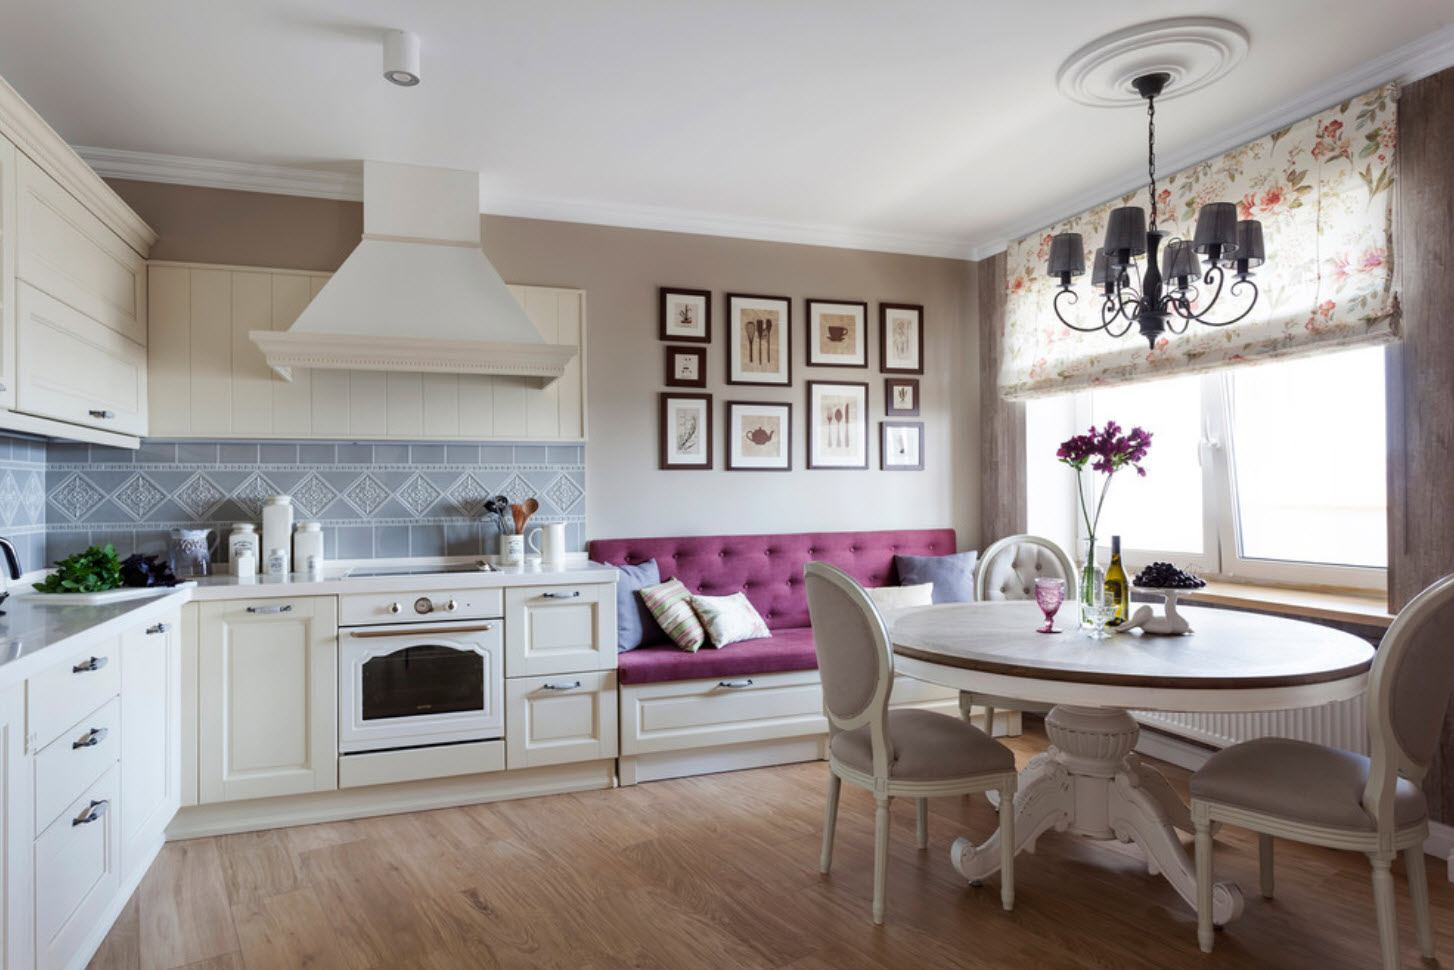 Classic kitchen design with touch of French Provence